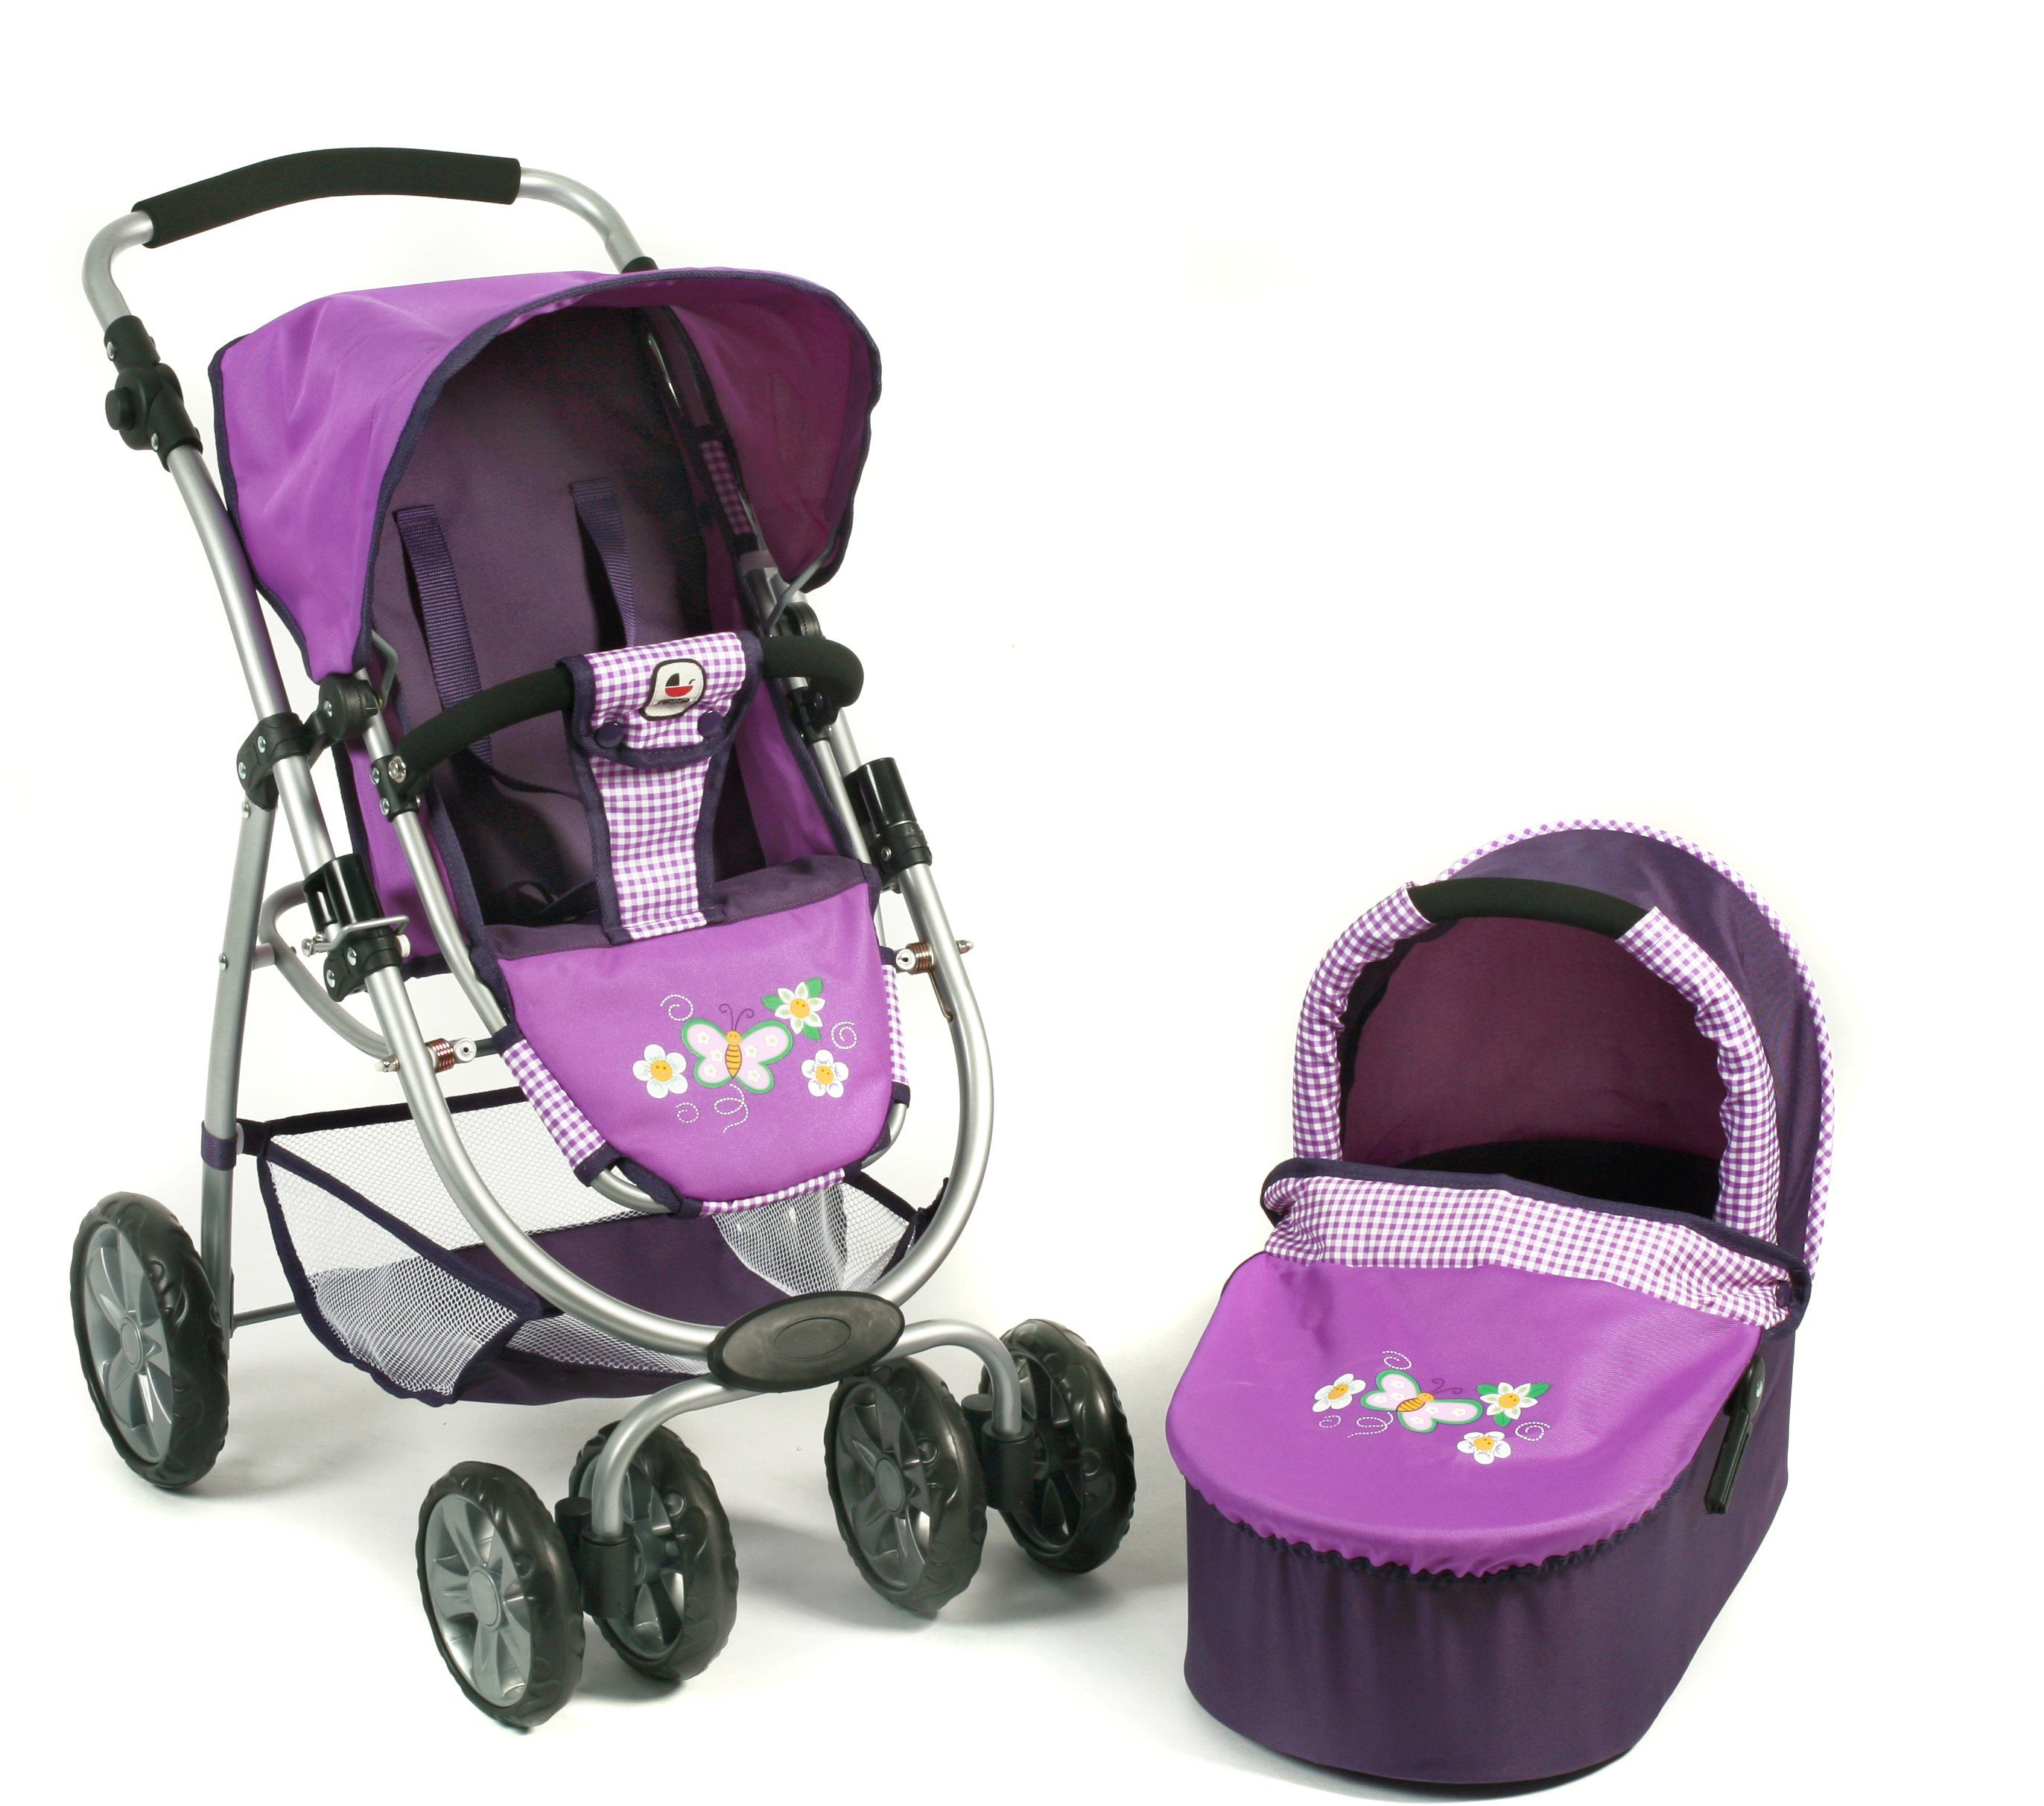 CHIC2000 Puppenwagen Kombi, »BELLINA 2 in 1 Purple«